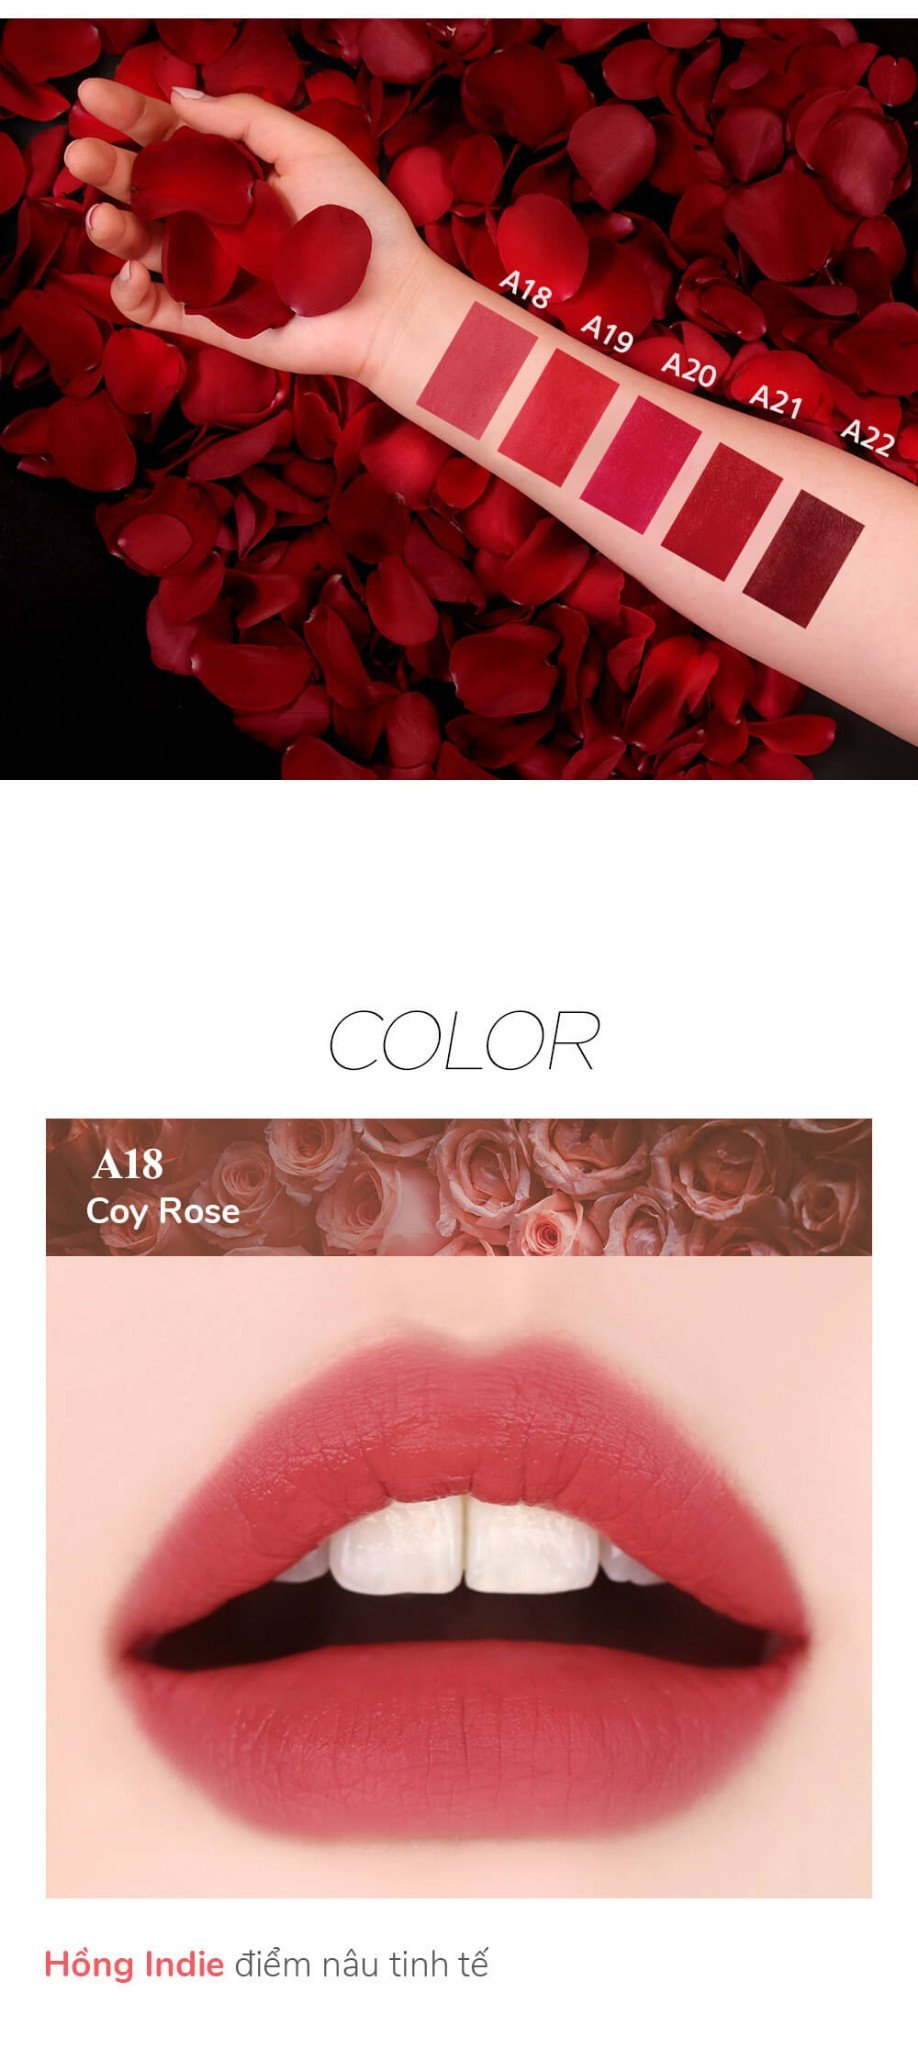 Black Rouge Air Fit Velvet Tint Ver.4 Bad Rose